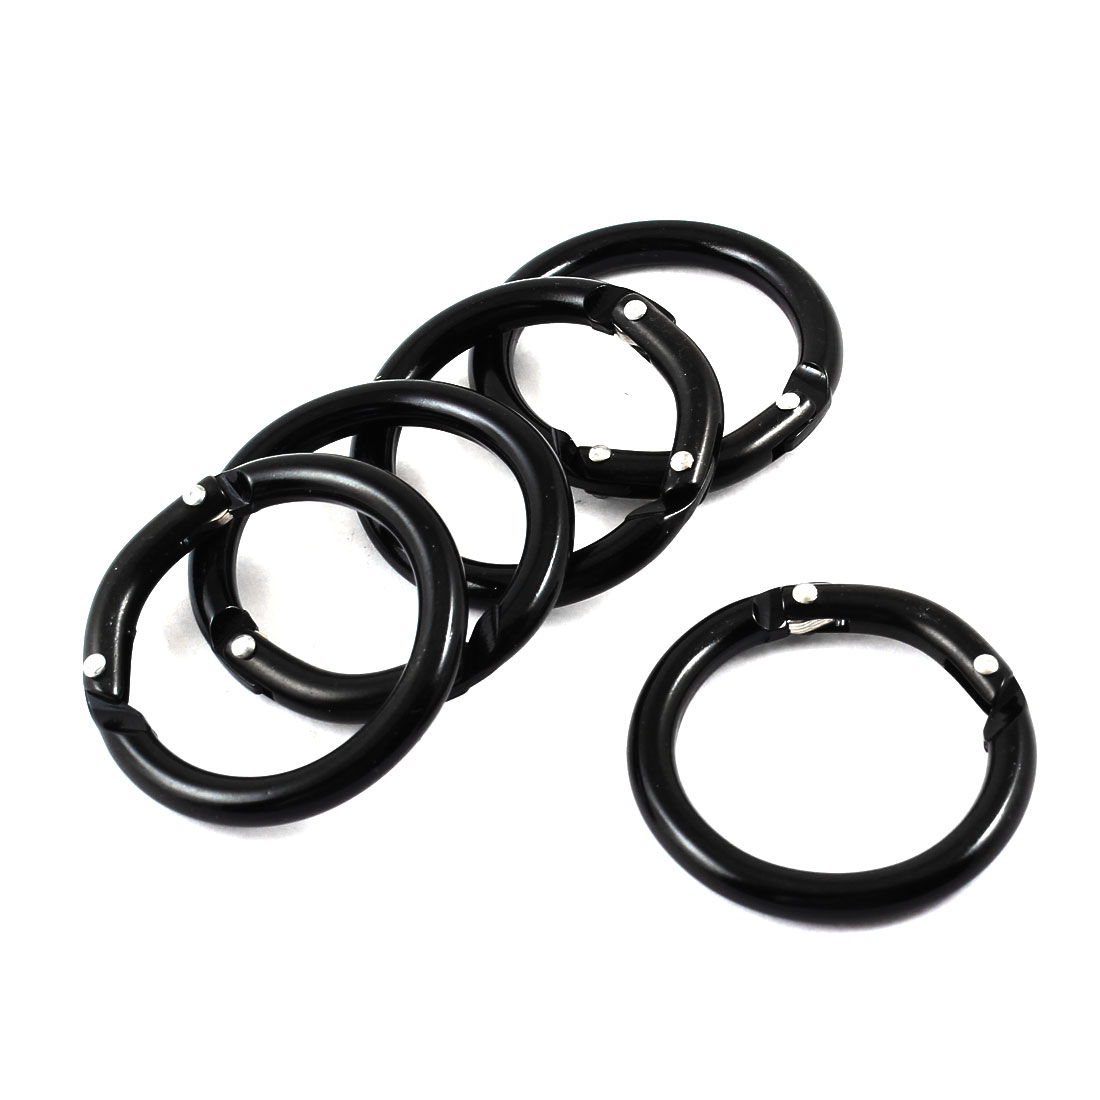 "5 Pcs 1.5"" OD Metal Circle Keyrings Key Holder Ring Keychain Black"